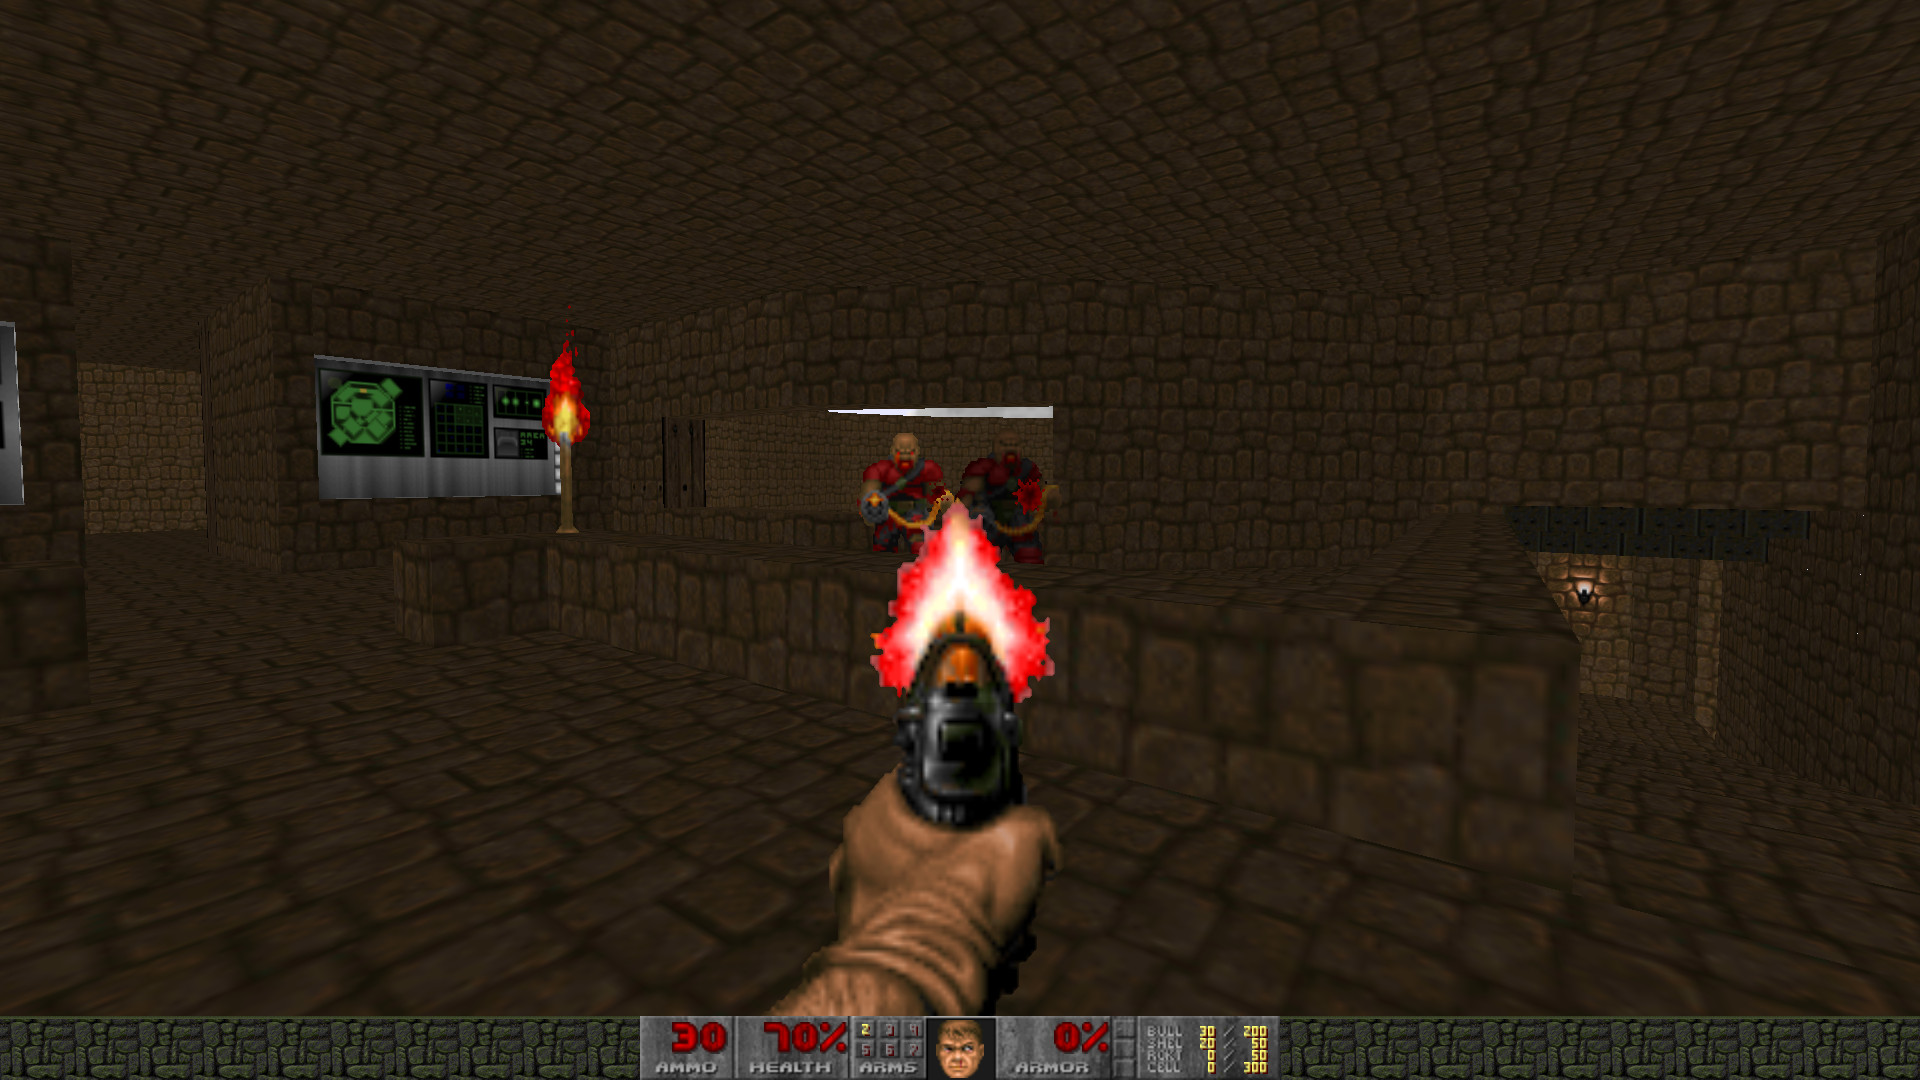 Gzdoom 4 0 0 Released With Their Experimental Vulkan Support Gamingonlinux